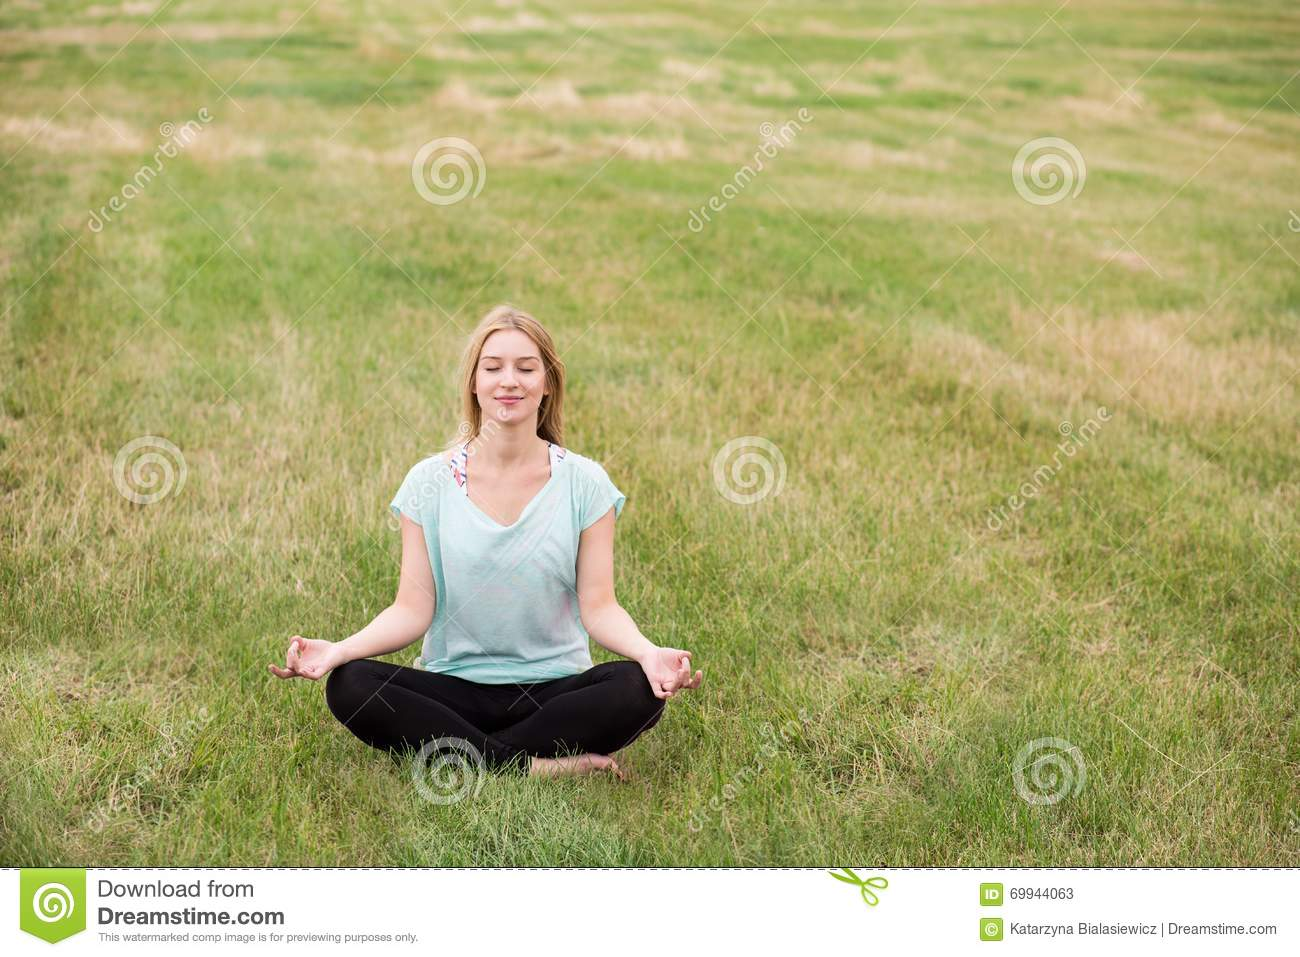 Practicing mindfulness meditation in nature